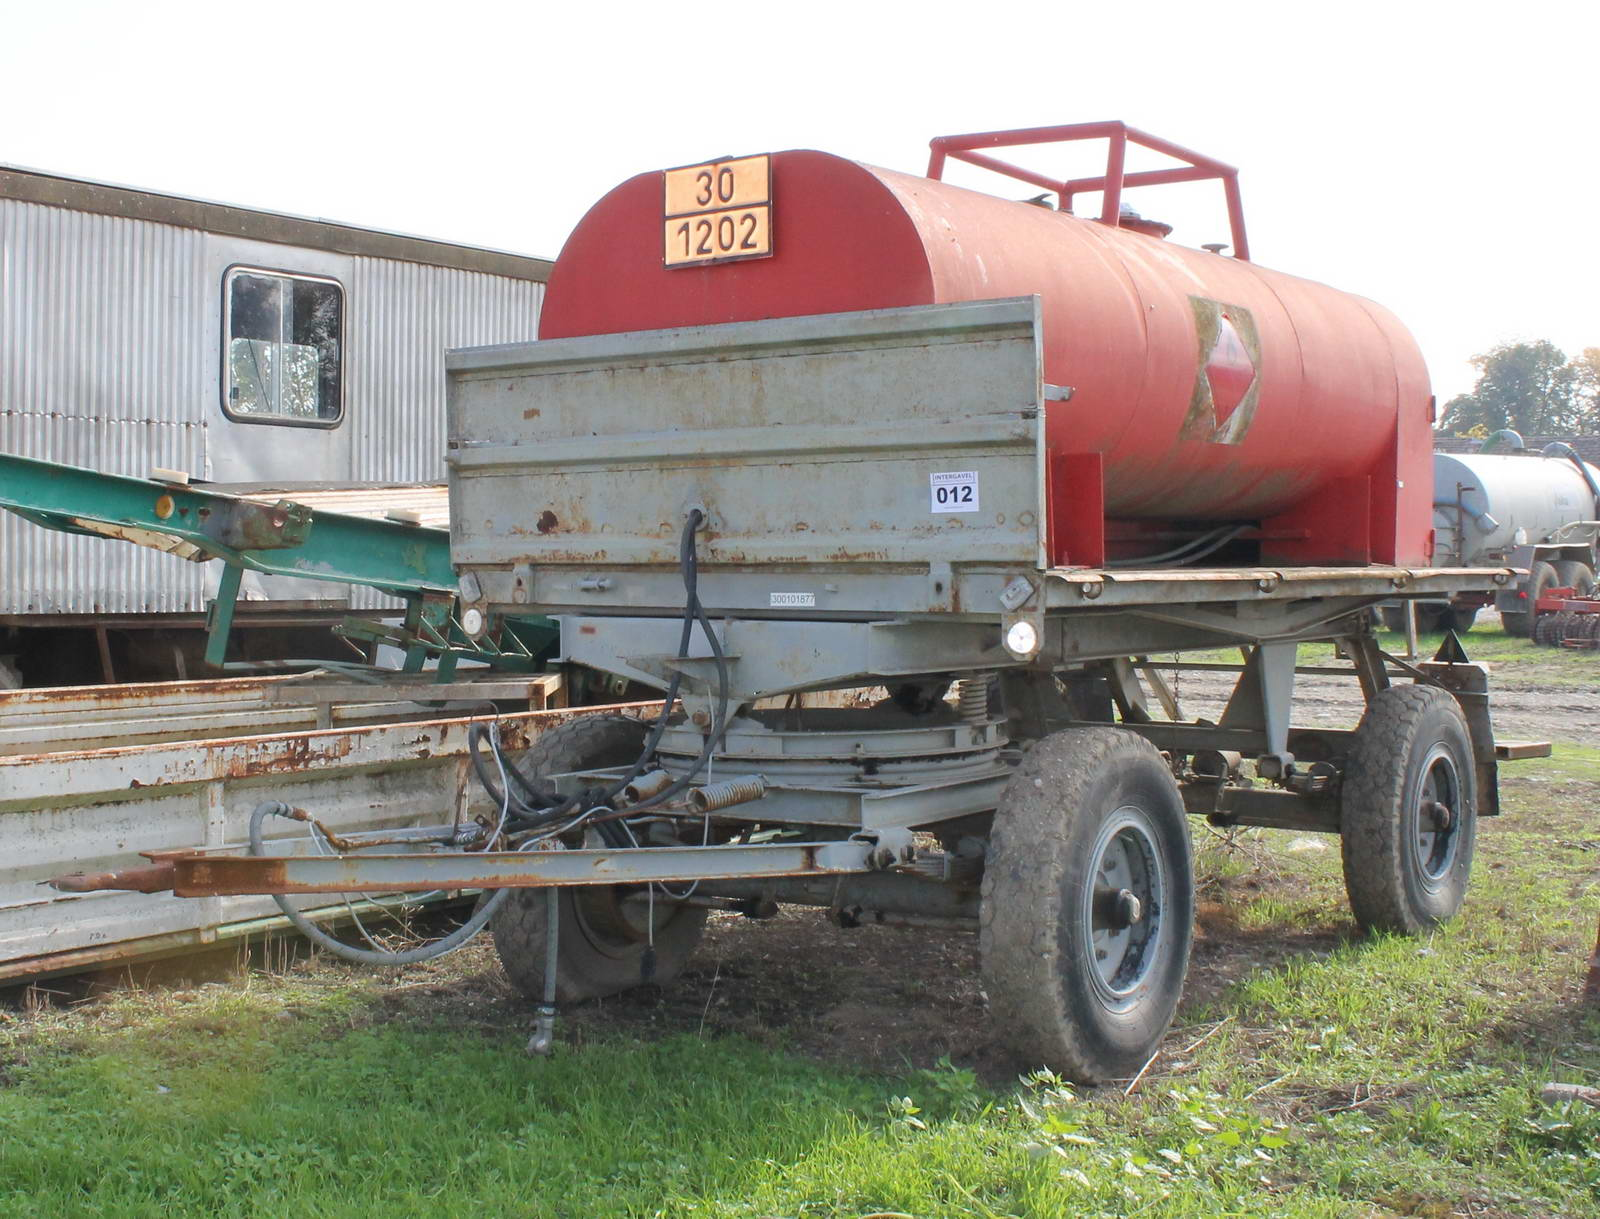 Trailer with fuel tank